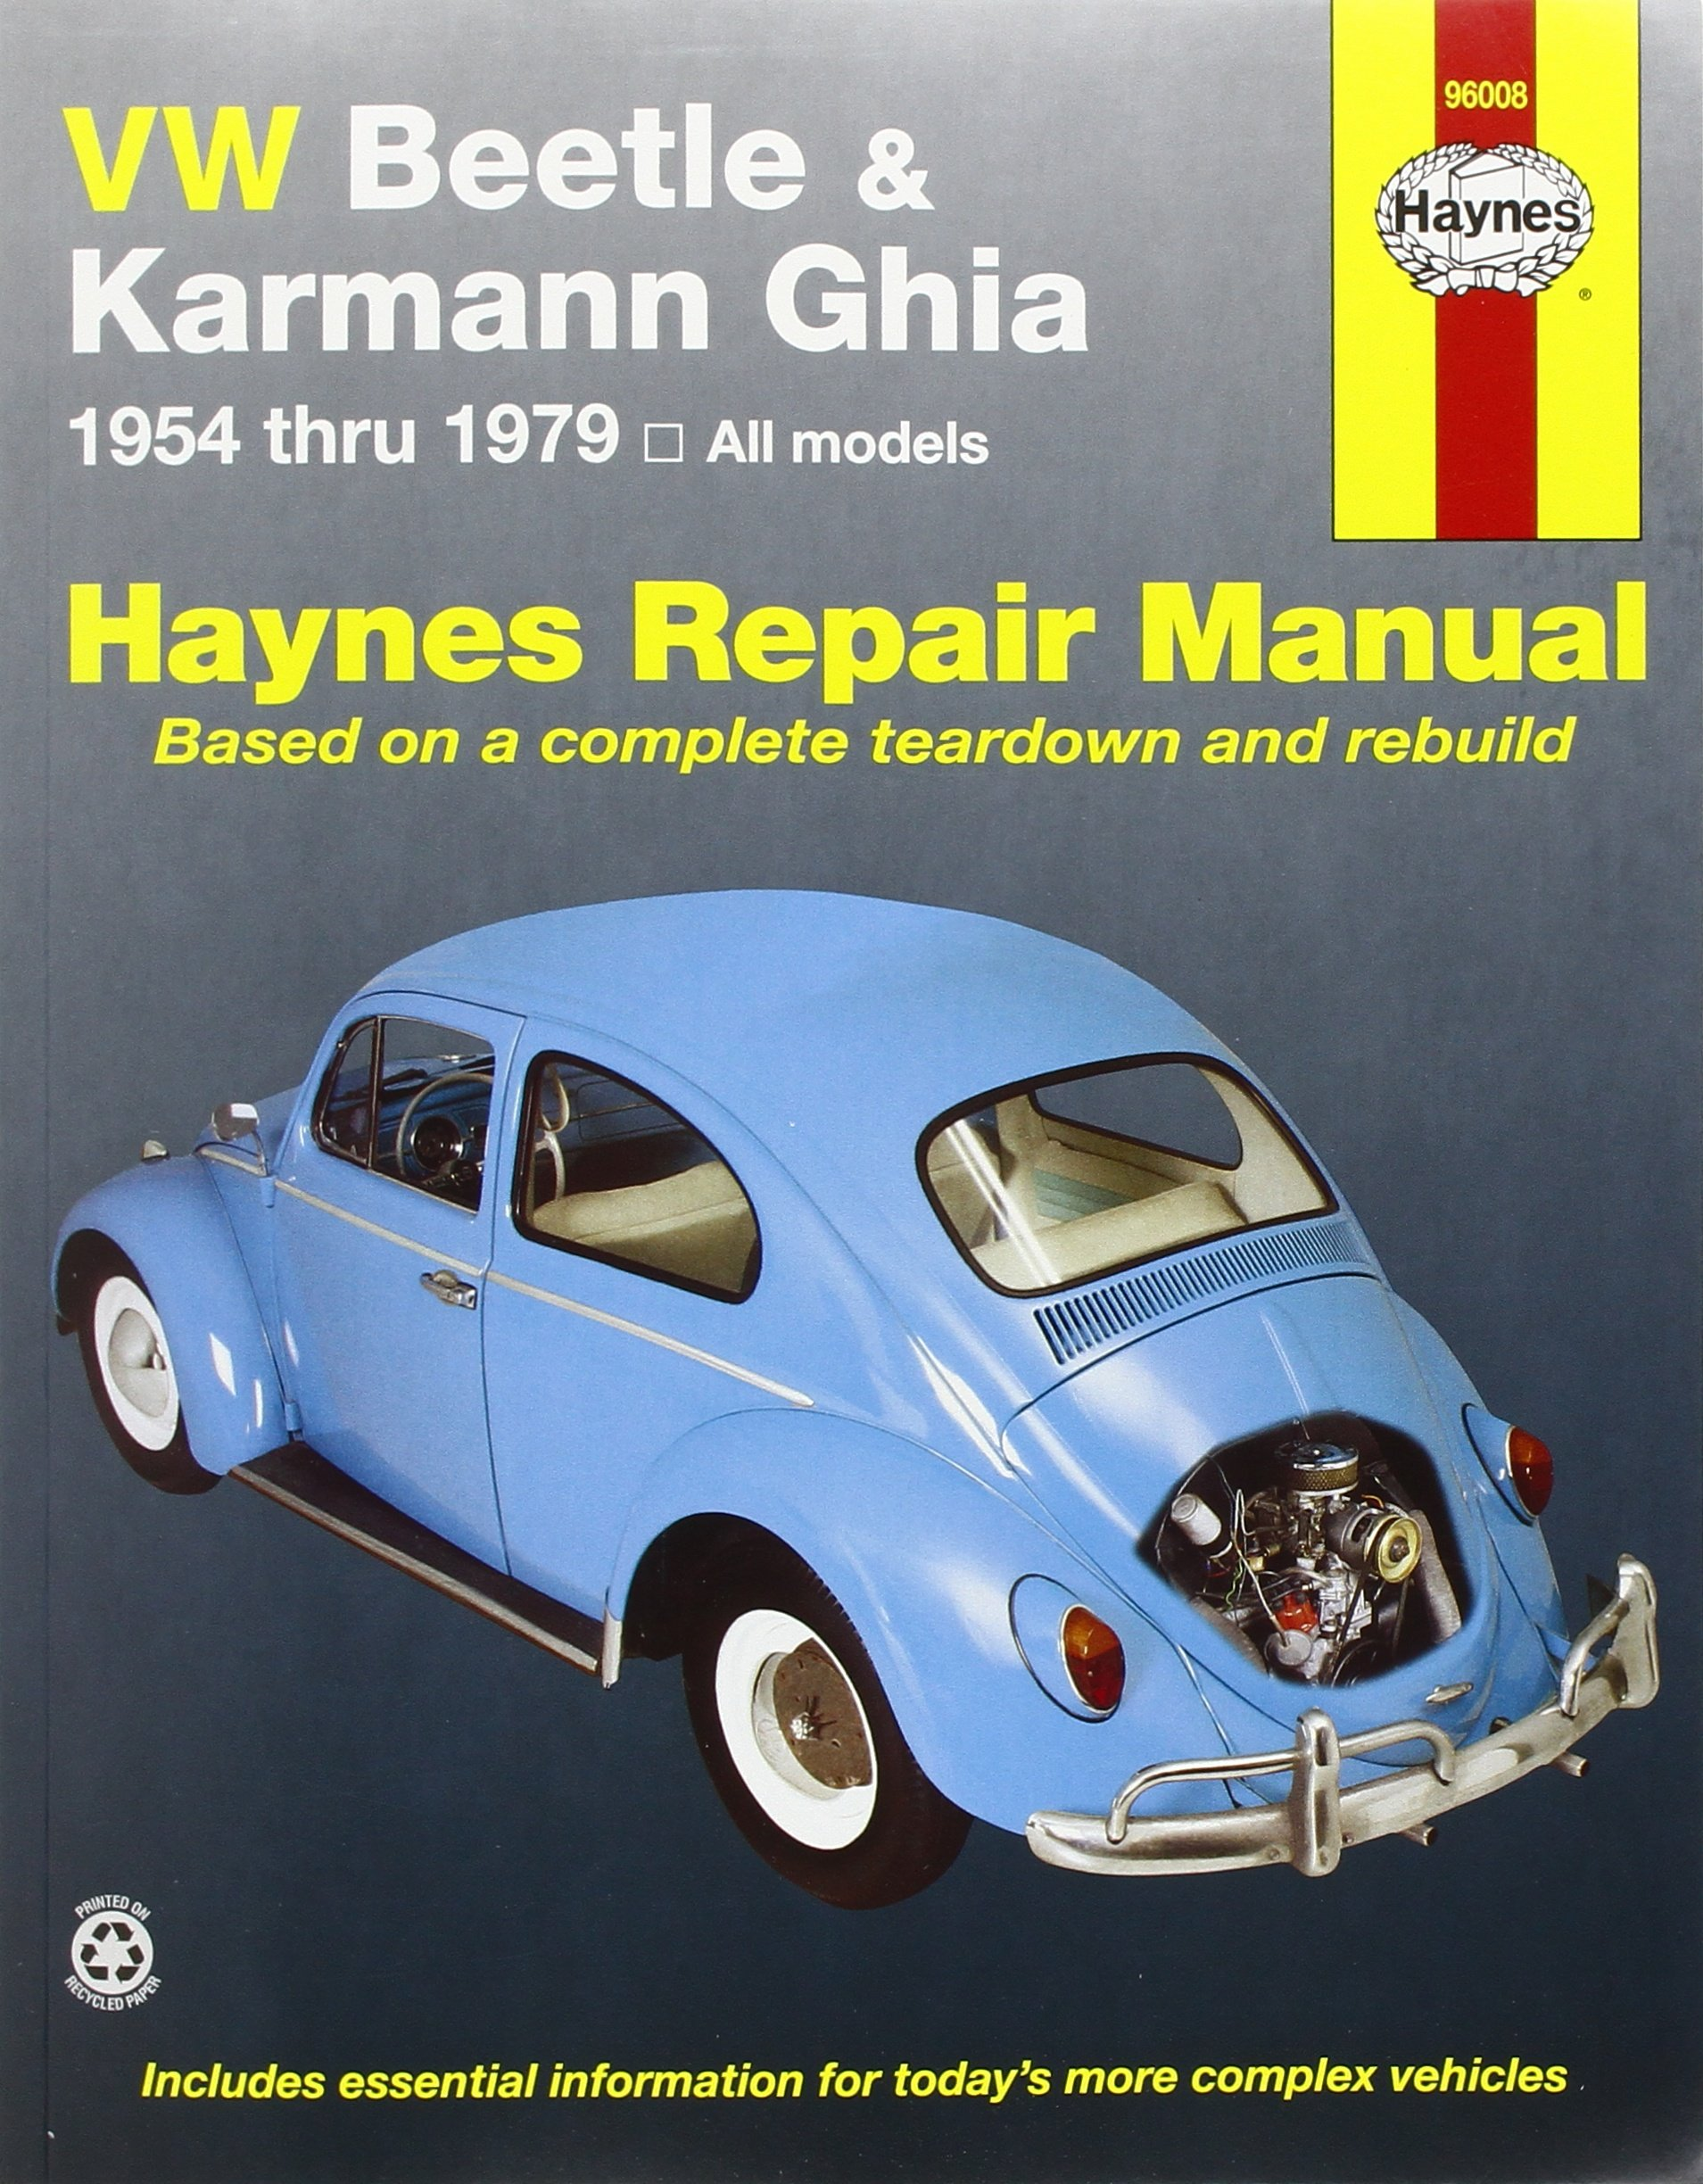 vw beetle karmann ghia 1954 through 1979 all models haynes repair rh amazon com 1938 Beetle 1968 Beetle Convertible